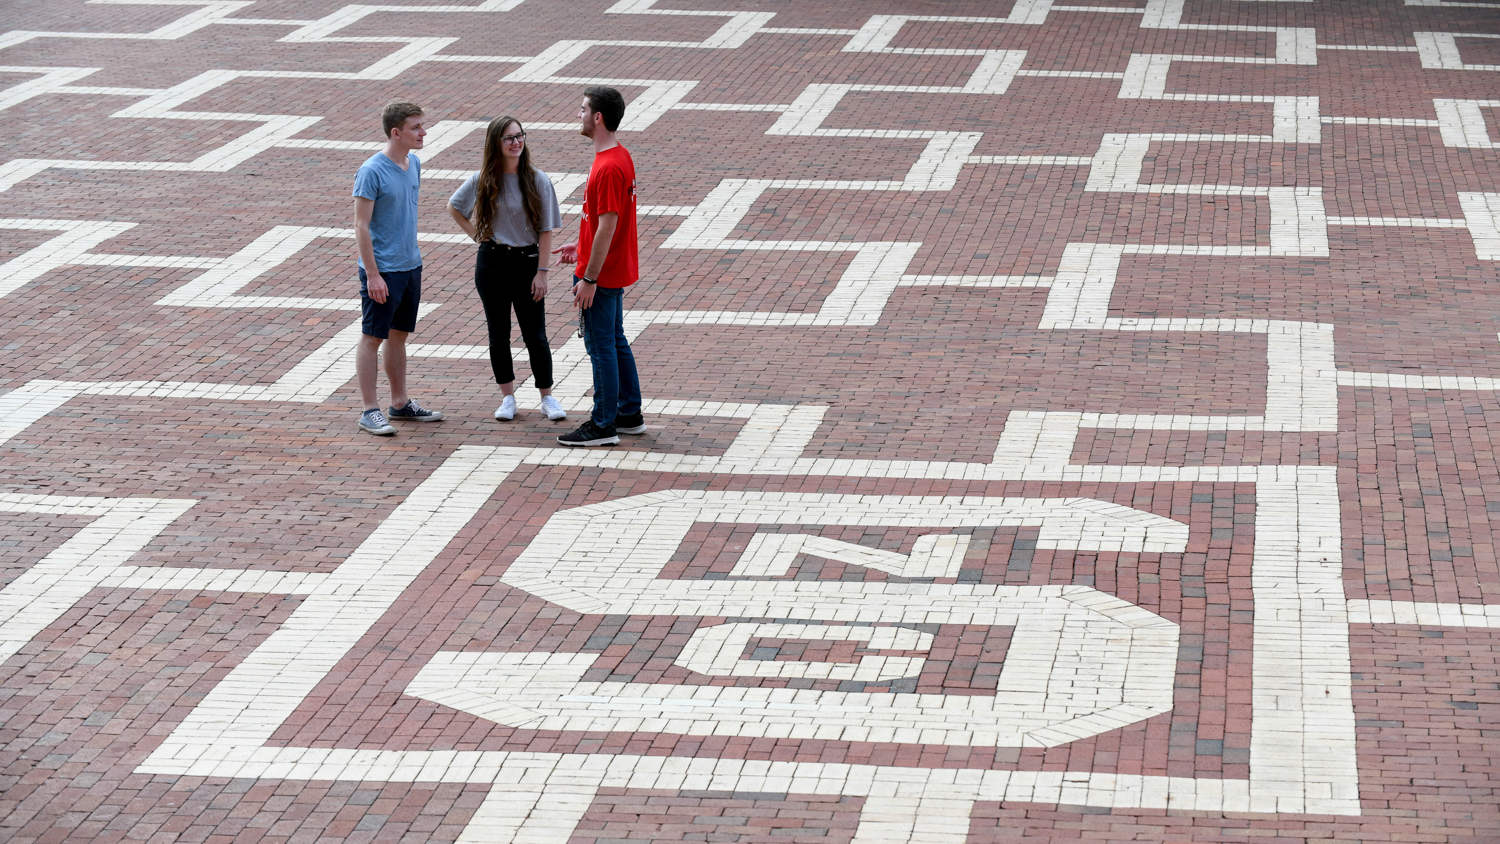 students in the brickyard